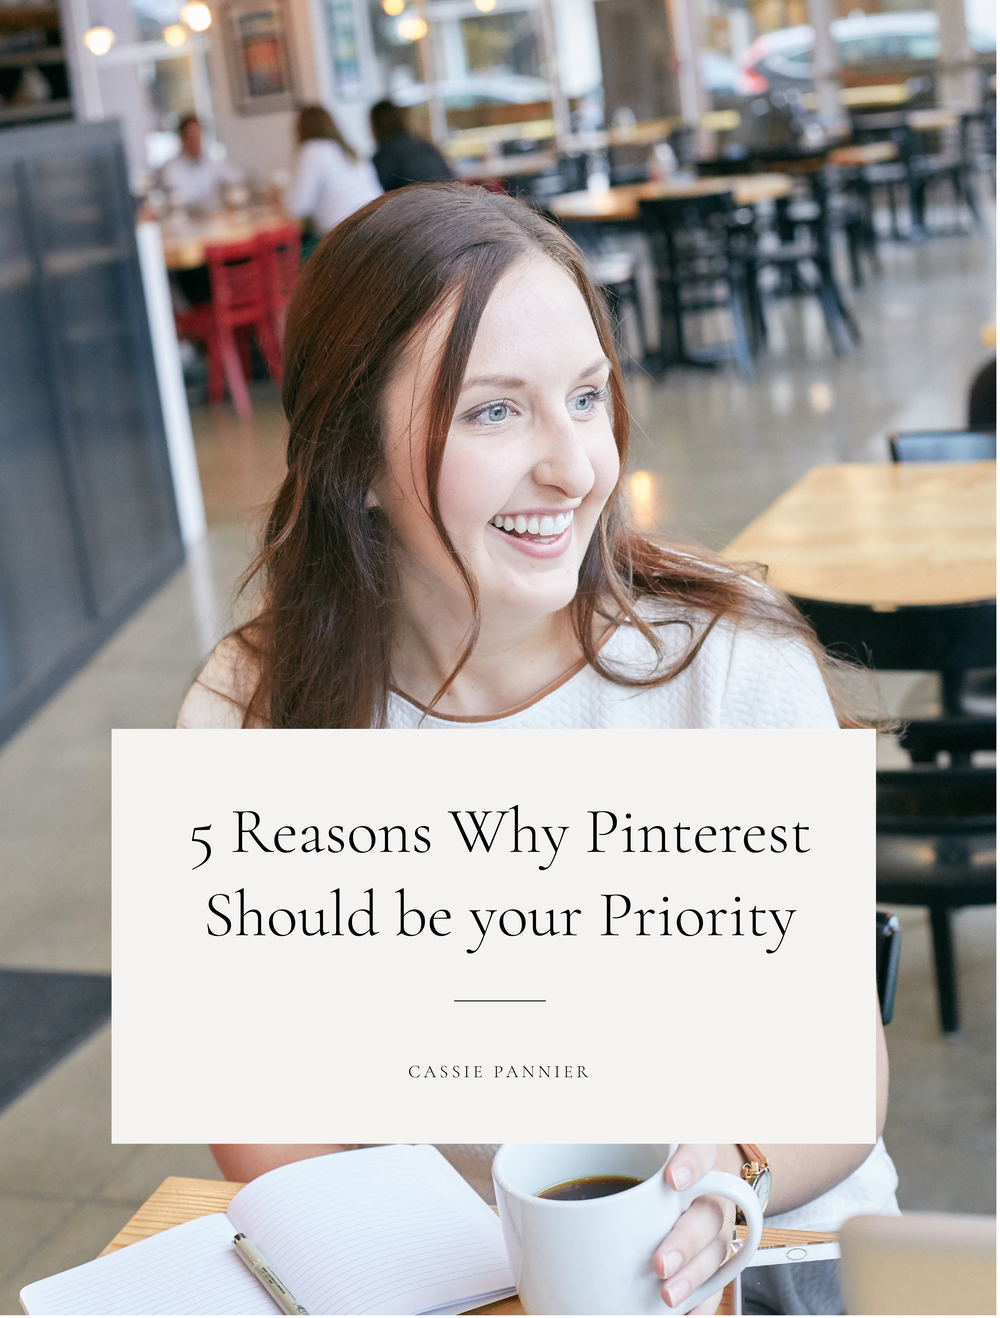 5 Reasons Why Pinterest Should Be Your Priority